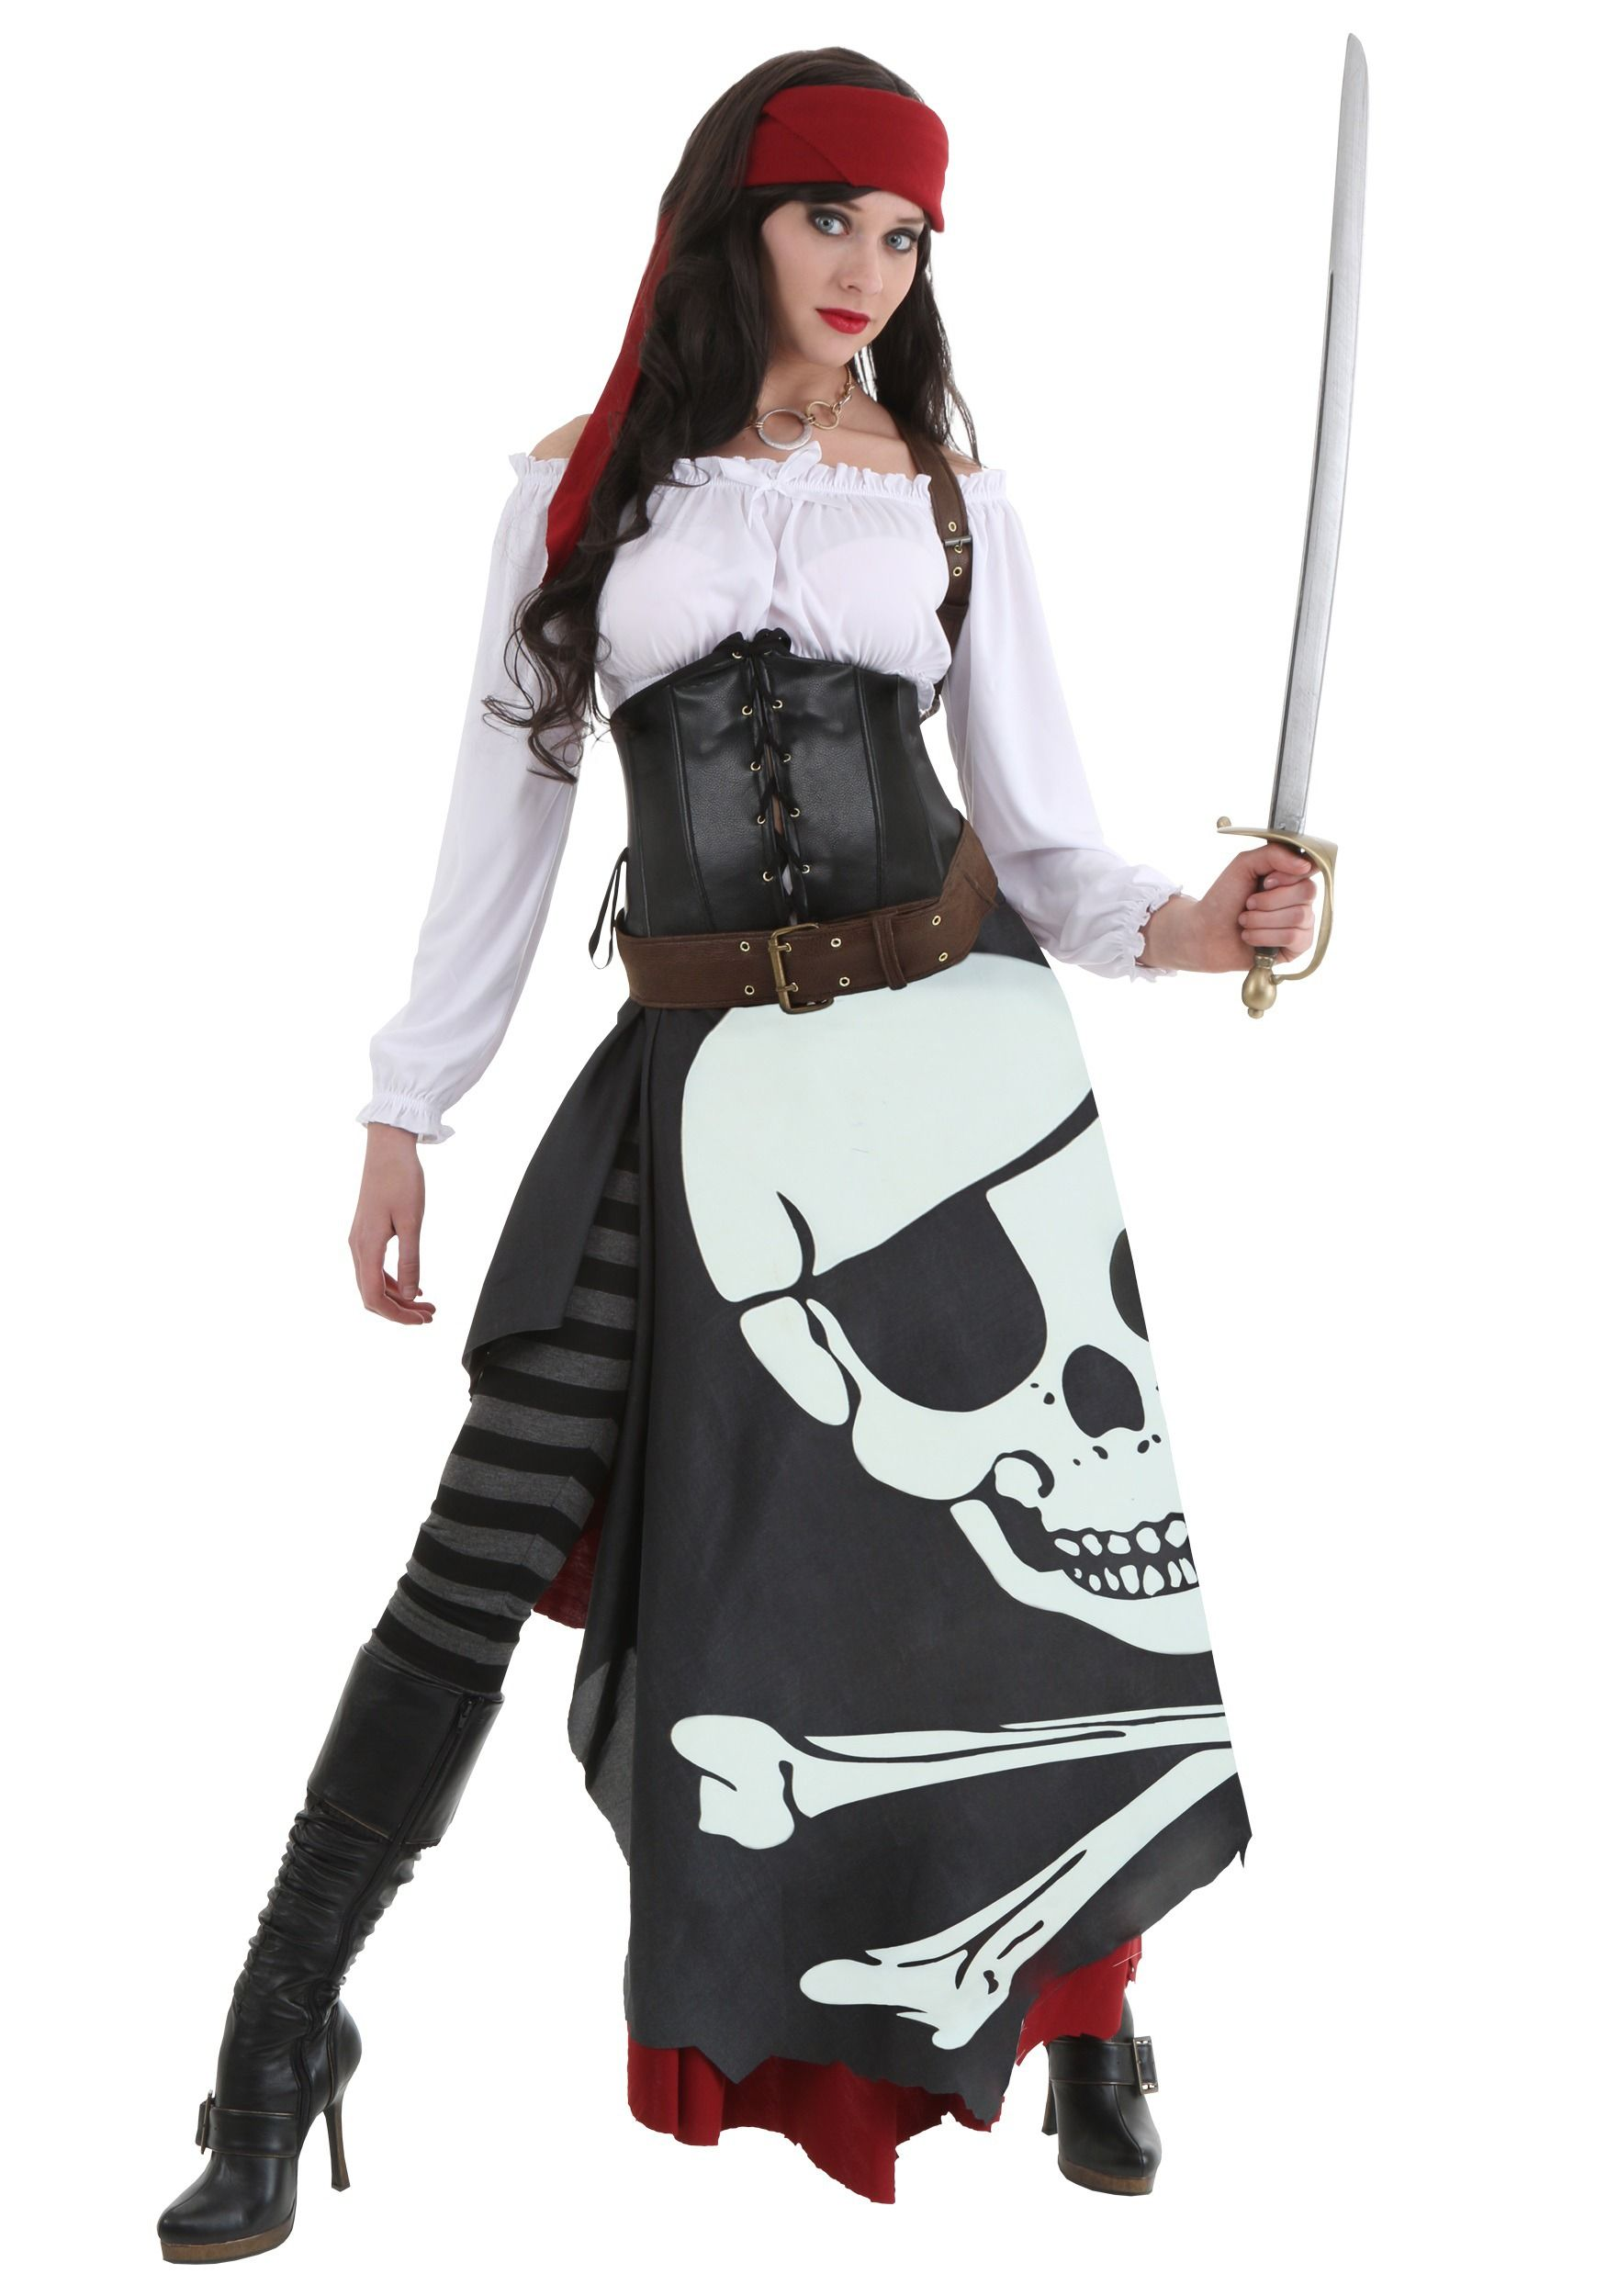 s pirate flag costume i need to